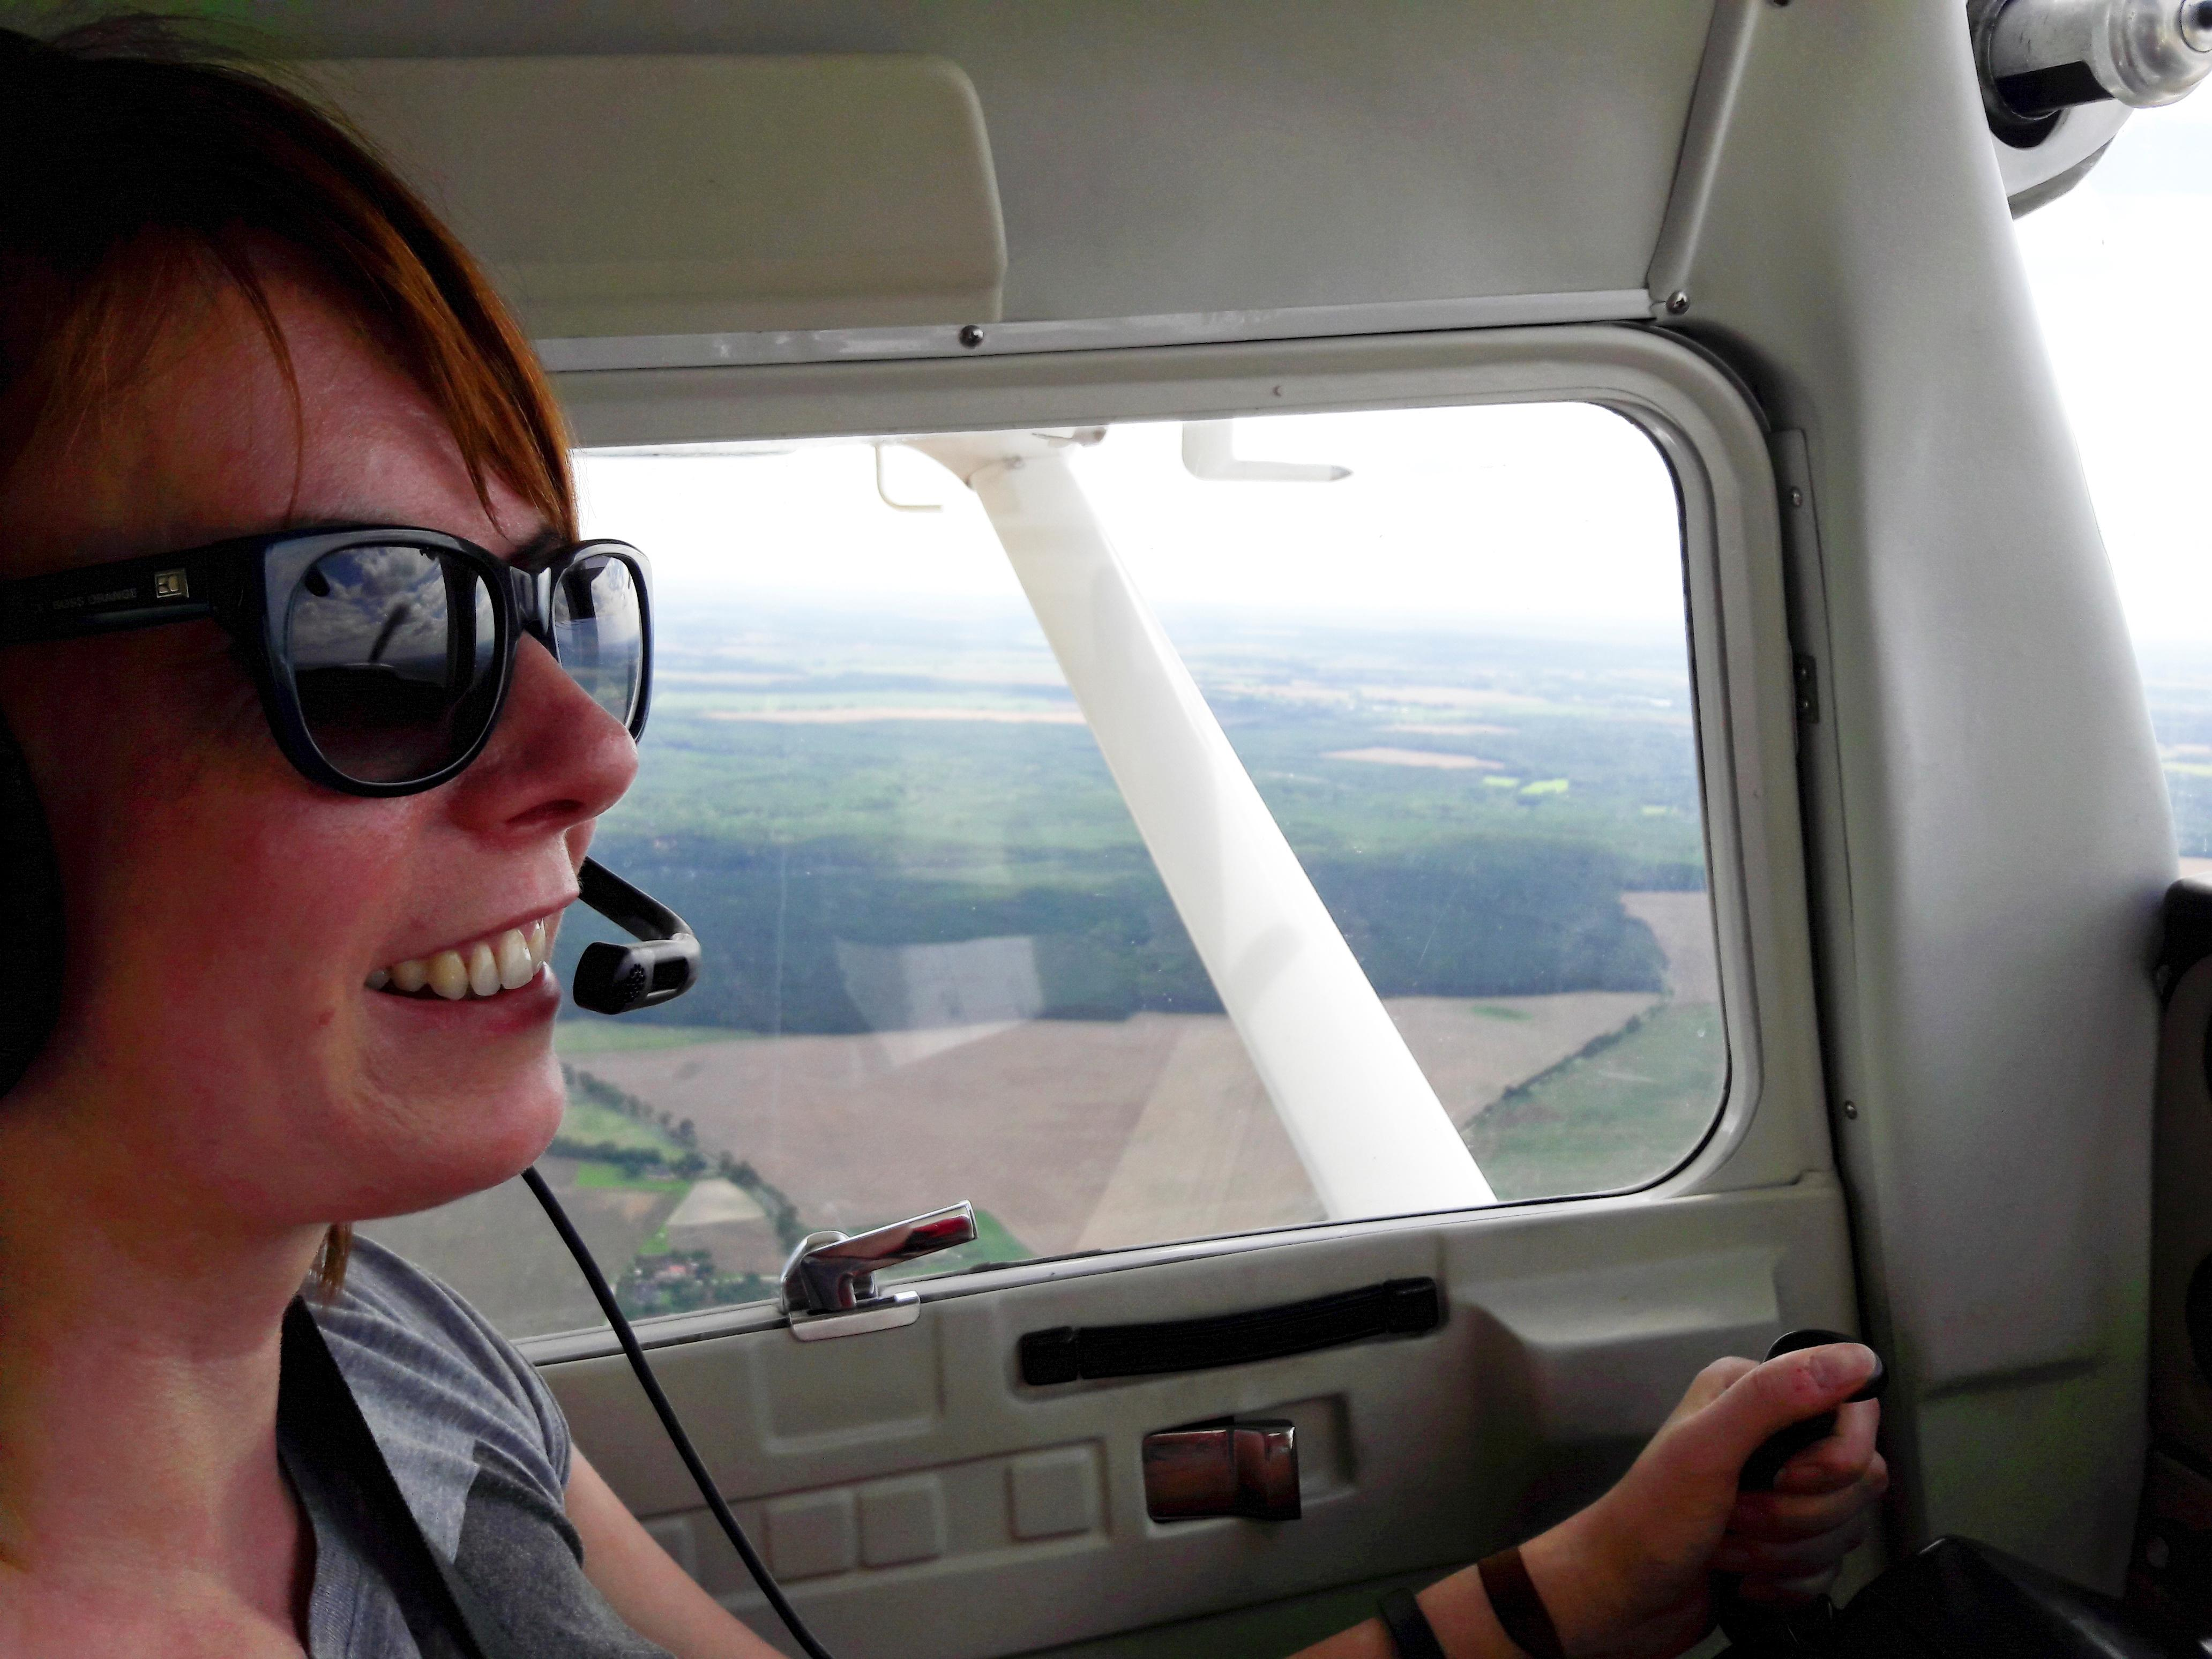 Airline correspondent Victoria Bryan pilots a Cesna 152 plane near Berlin, Germany August 5, 2017. Staff